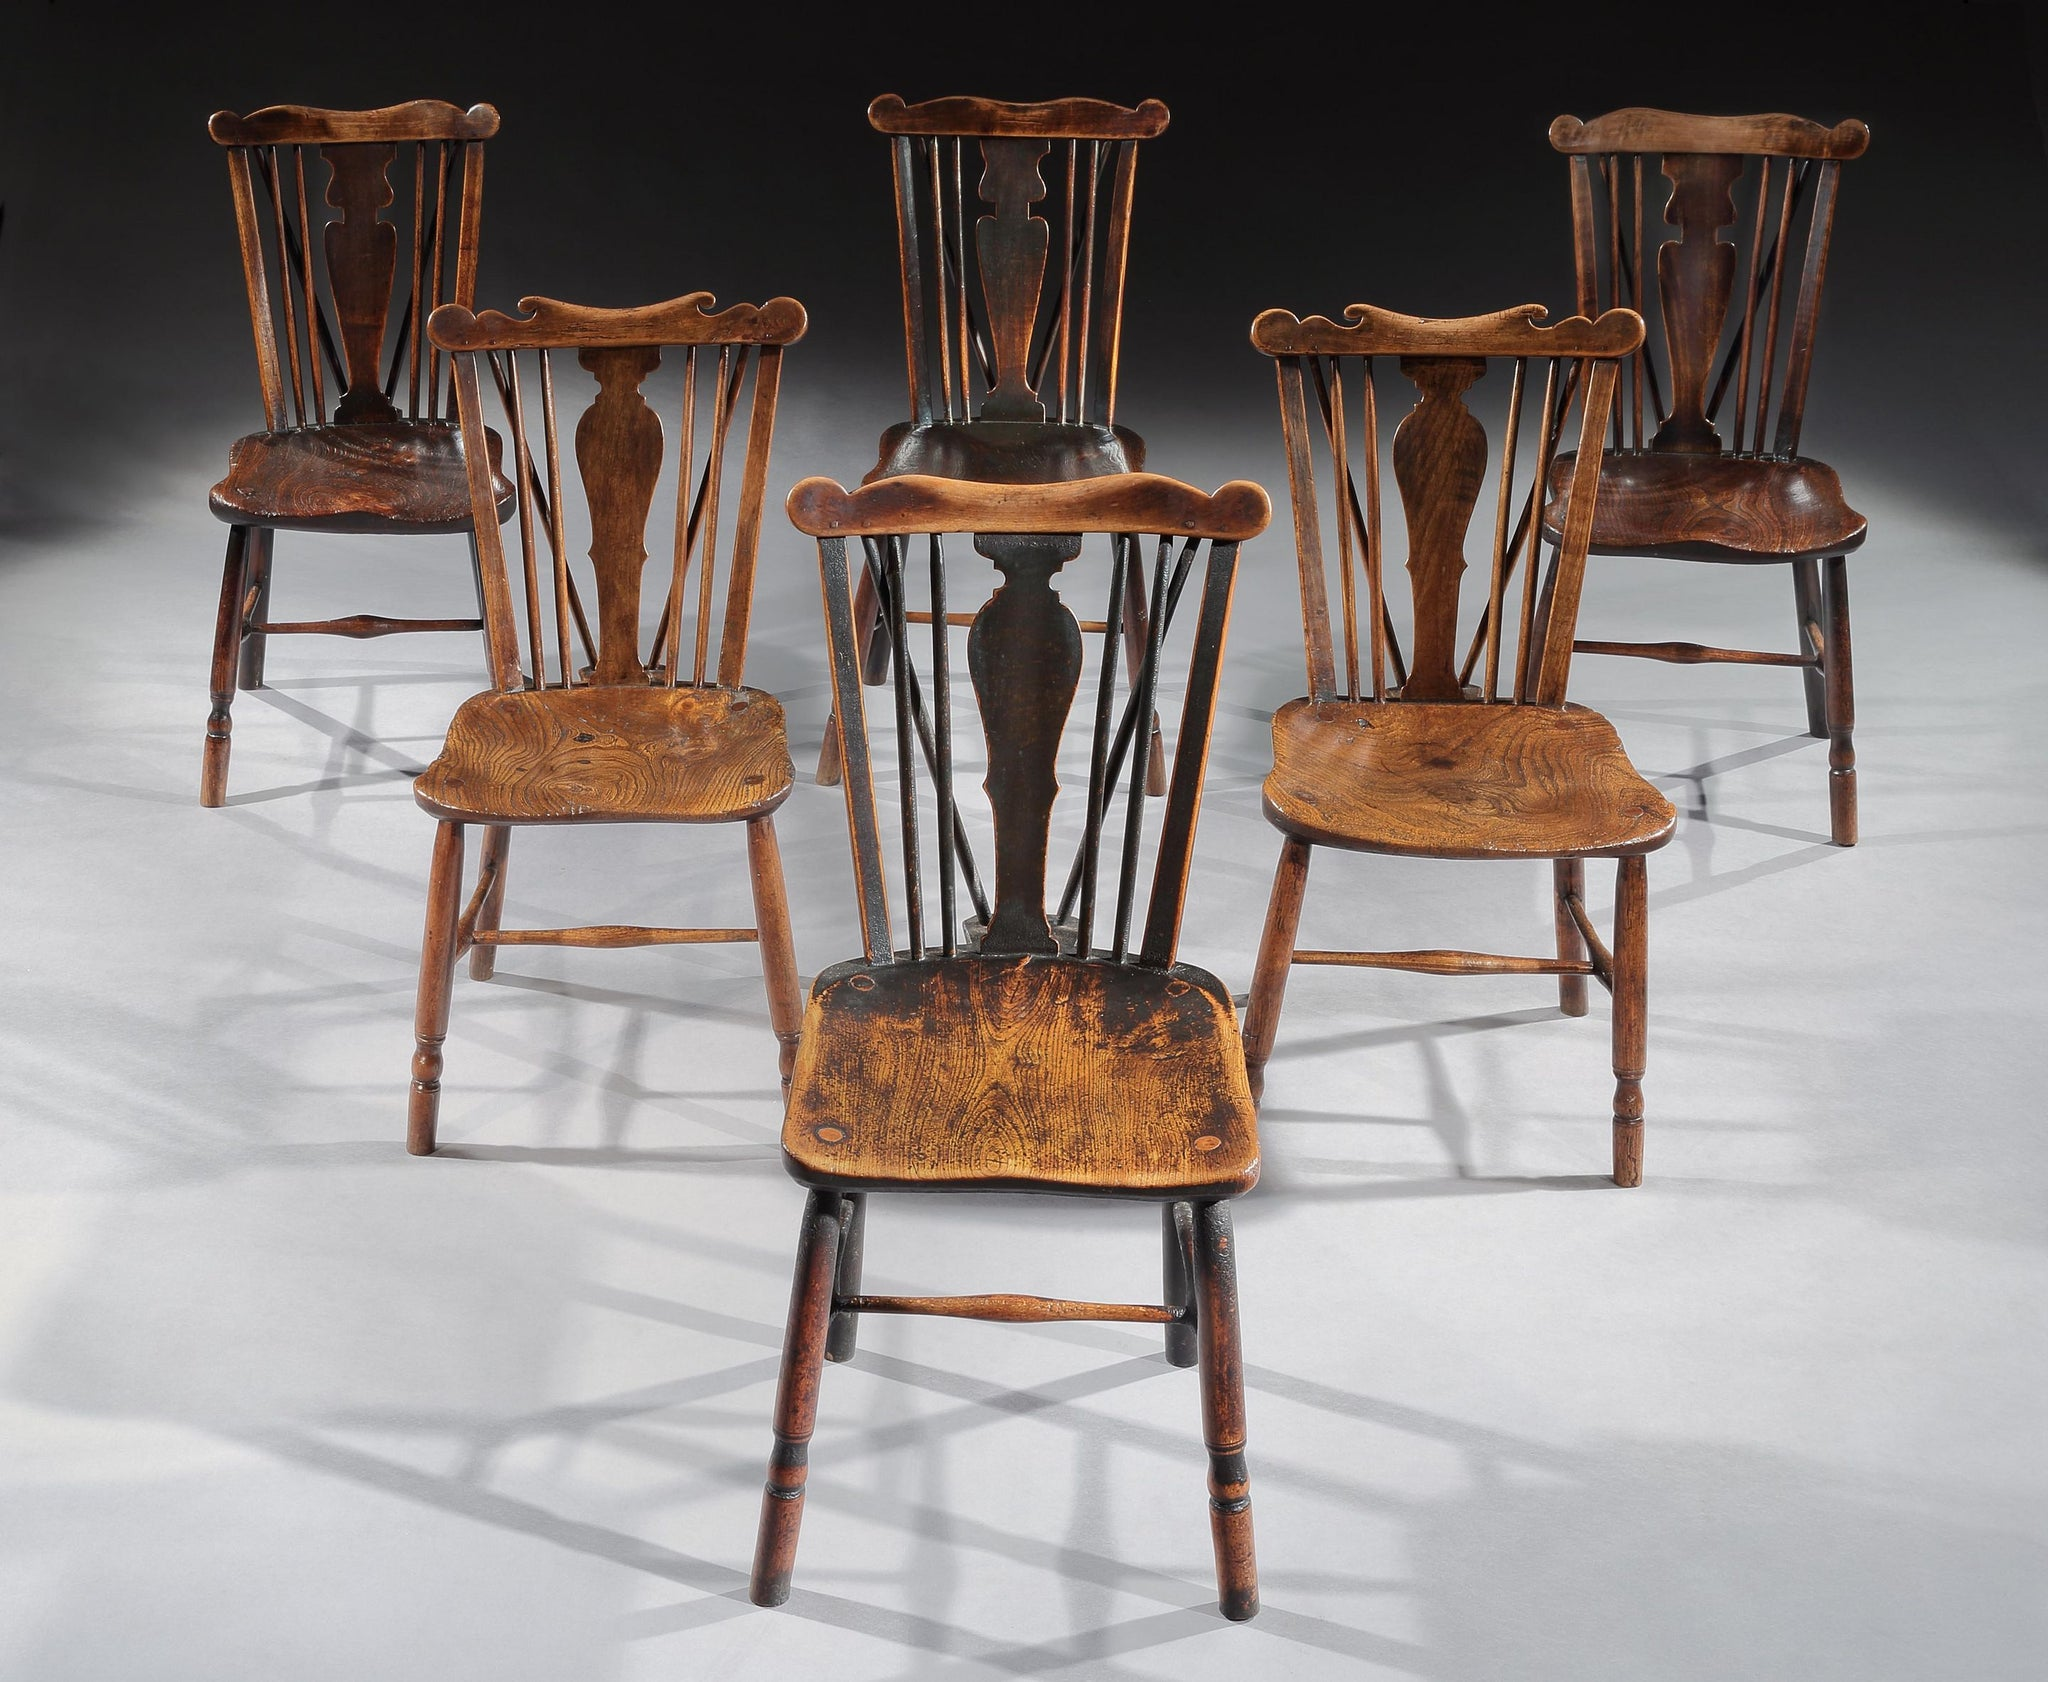 A Good Matched Set of Six Early Comb Back Windsor Chairs